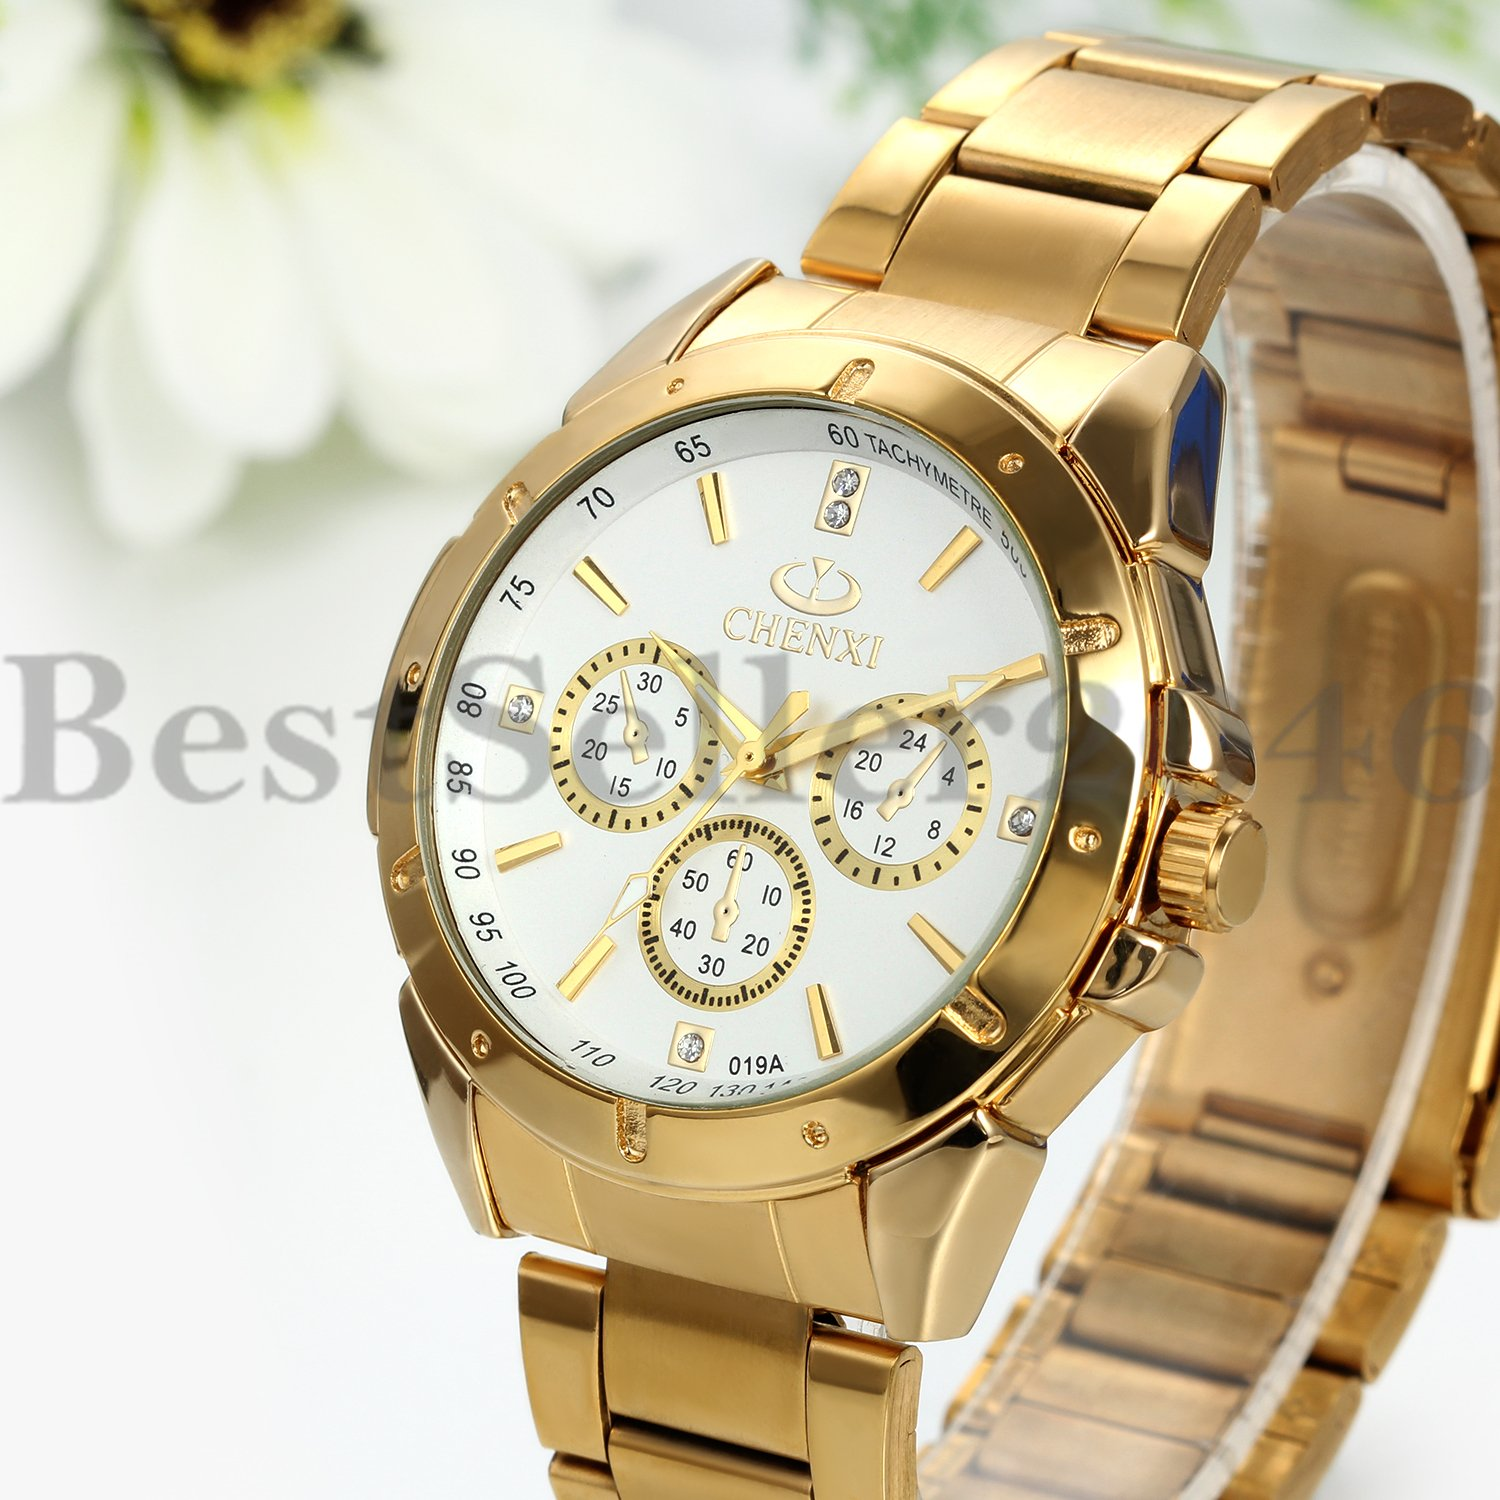 Men's Fashion Luxury Watch Stainless Steel Band Sport Analog Quartz Wristwatches